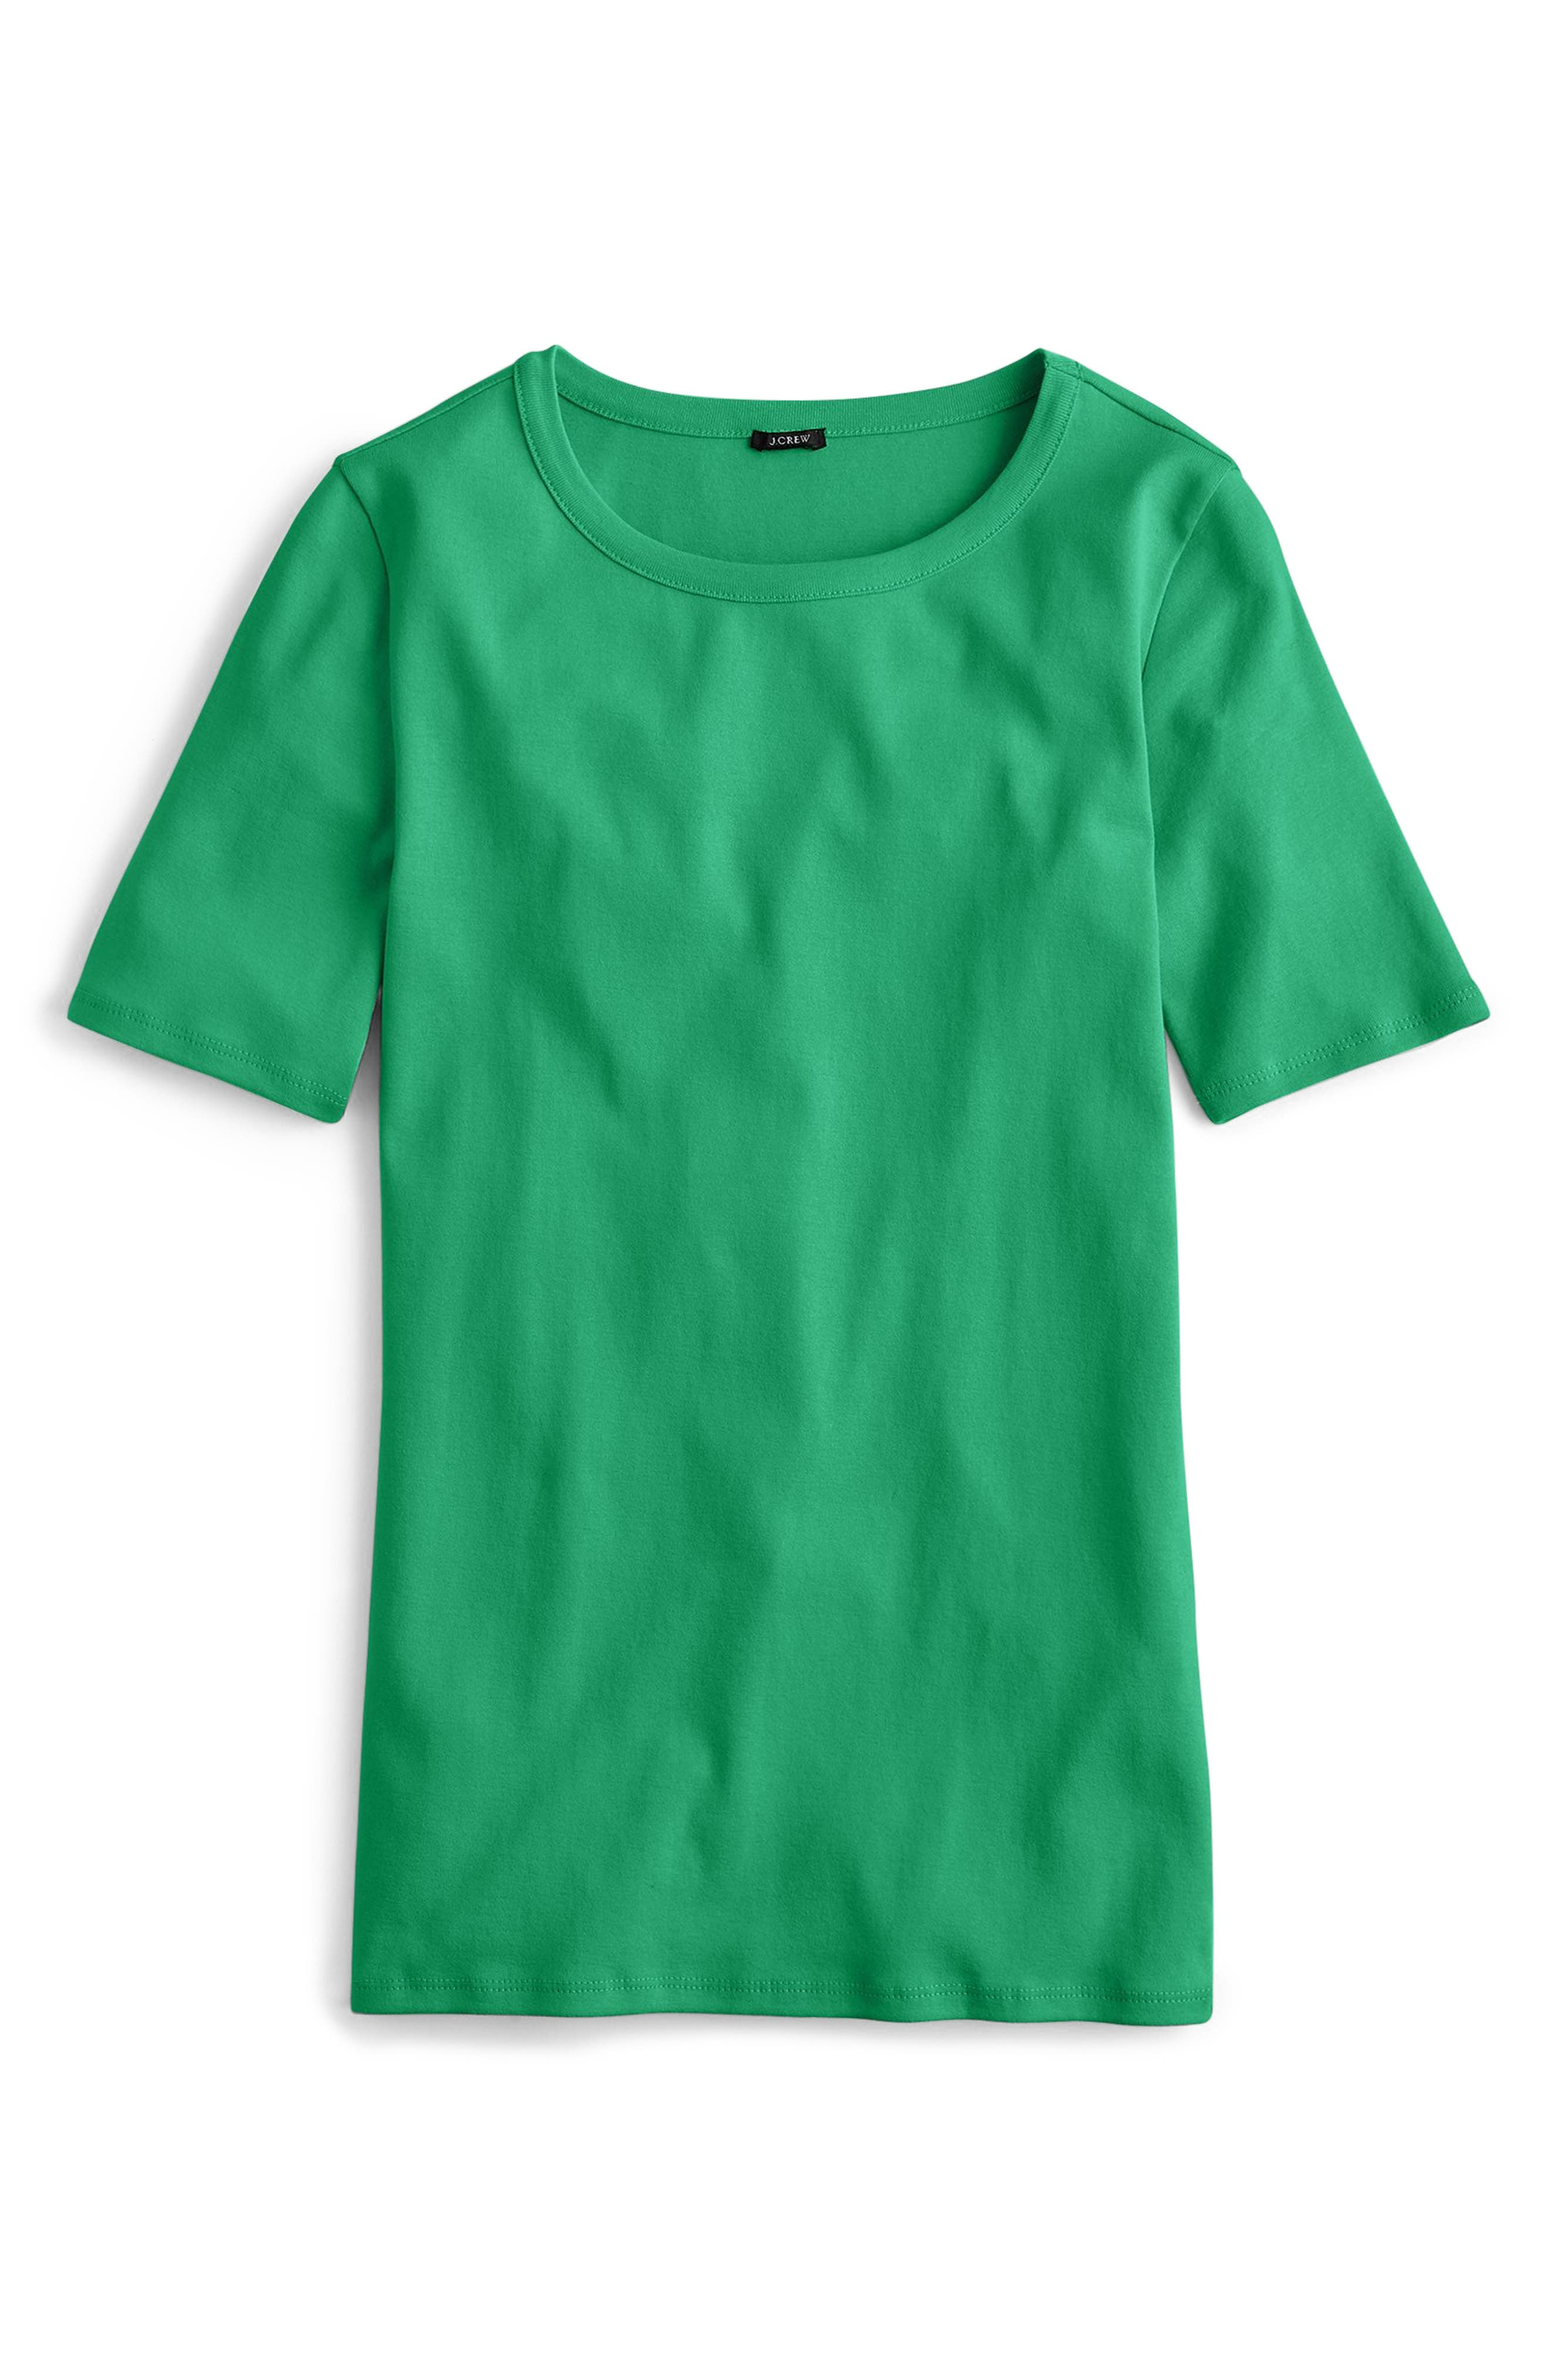 New Perfect Fit T-Shirt,                             Main thumbnail 1, color,                             ALPINE MEADOW